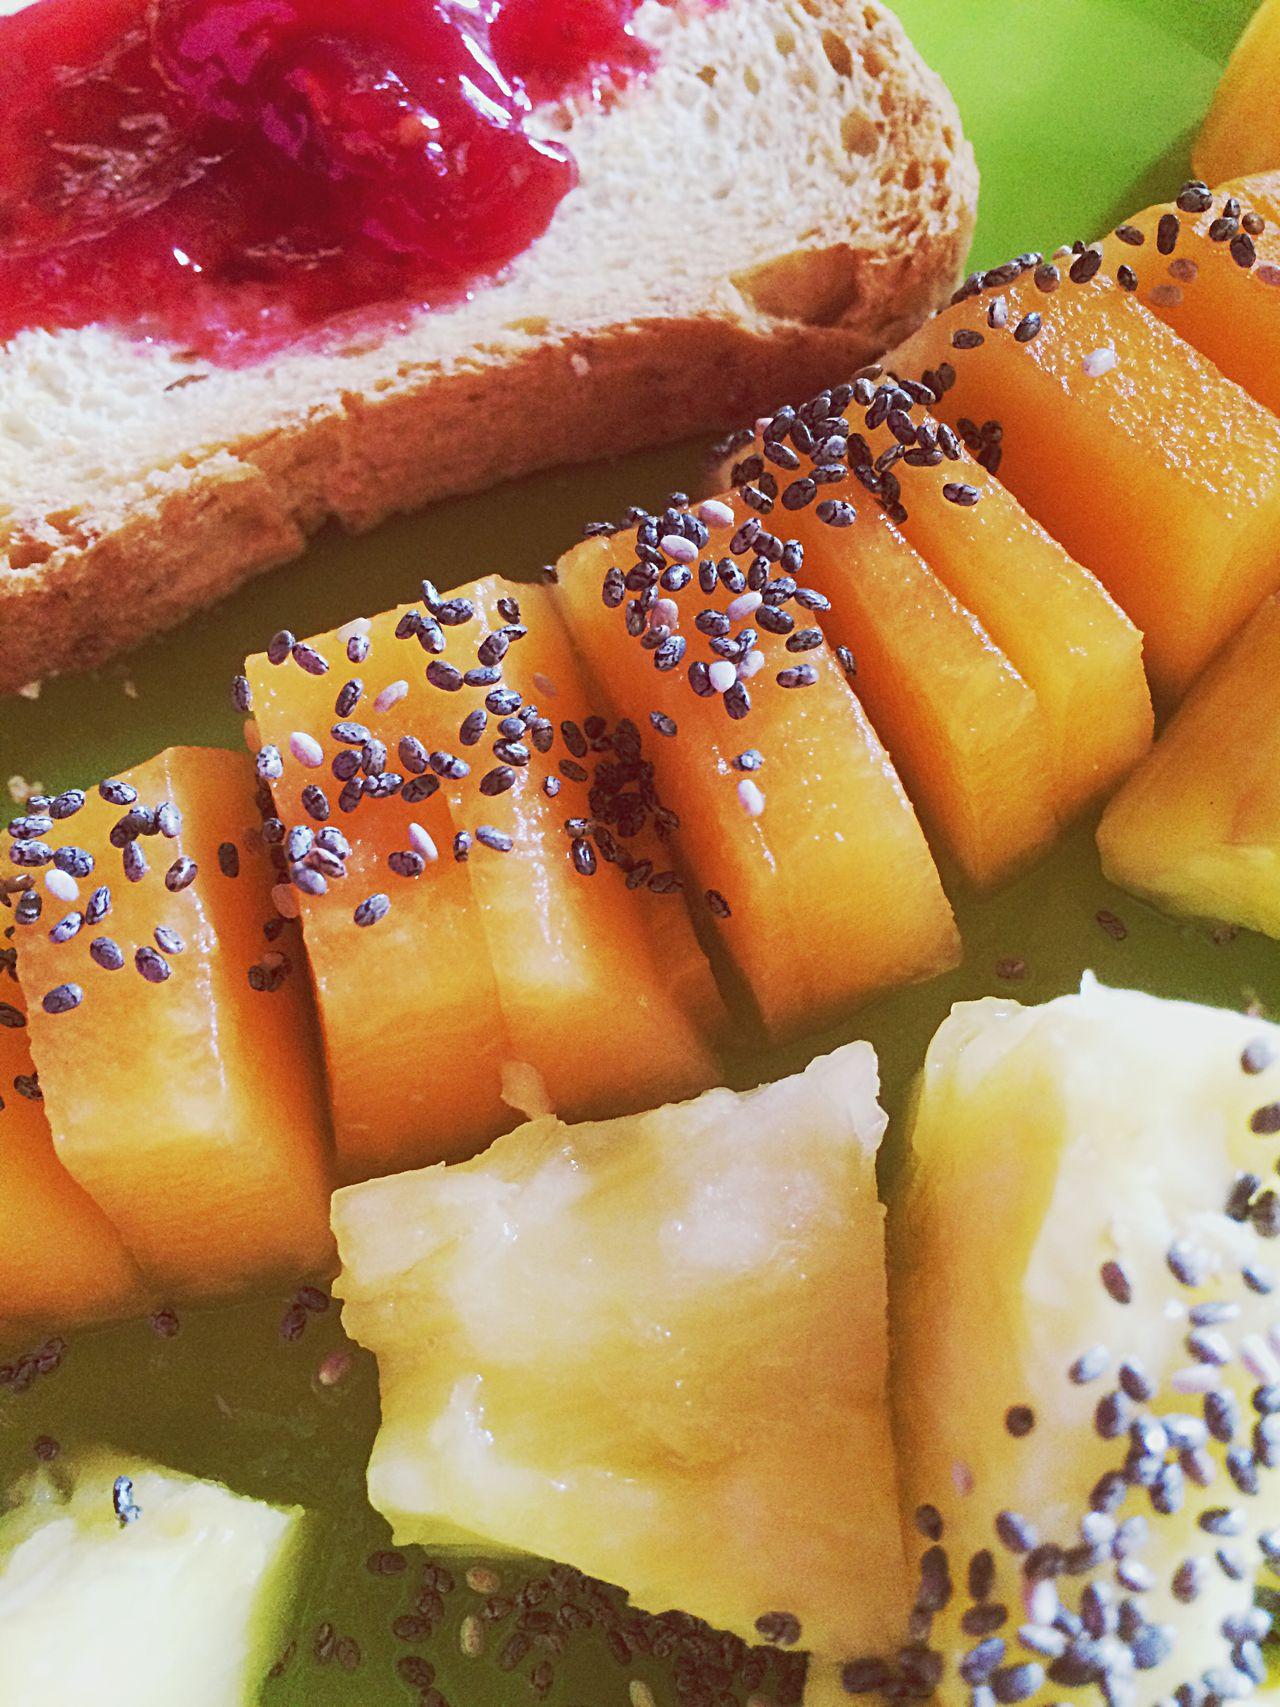 Morning Food And Drink Food Freshness Indoors  Ready-to-eat Close-up Seed No People Healthy Eating SLICE Sesame Seed Serving Size Temptation Day Coffee Raspberry Addiction Morning Rituals Caffè Colazione Chiaseeds Ananas